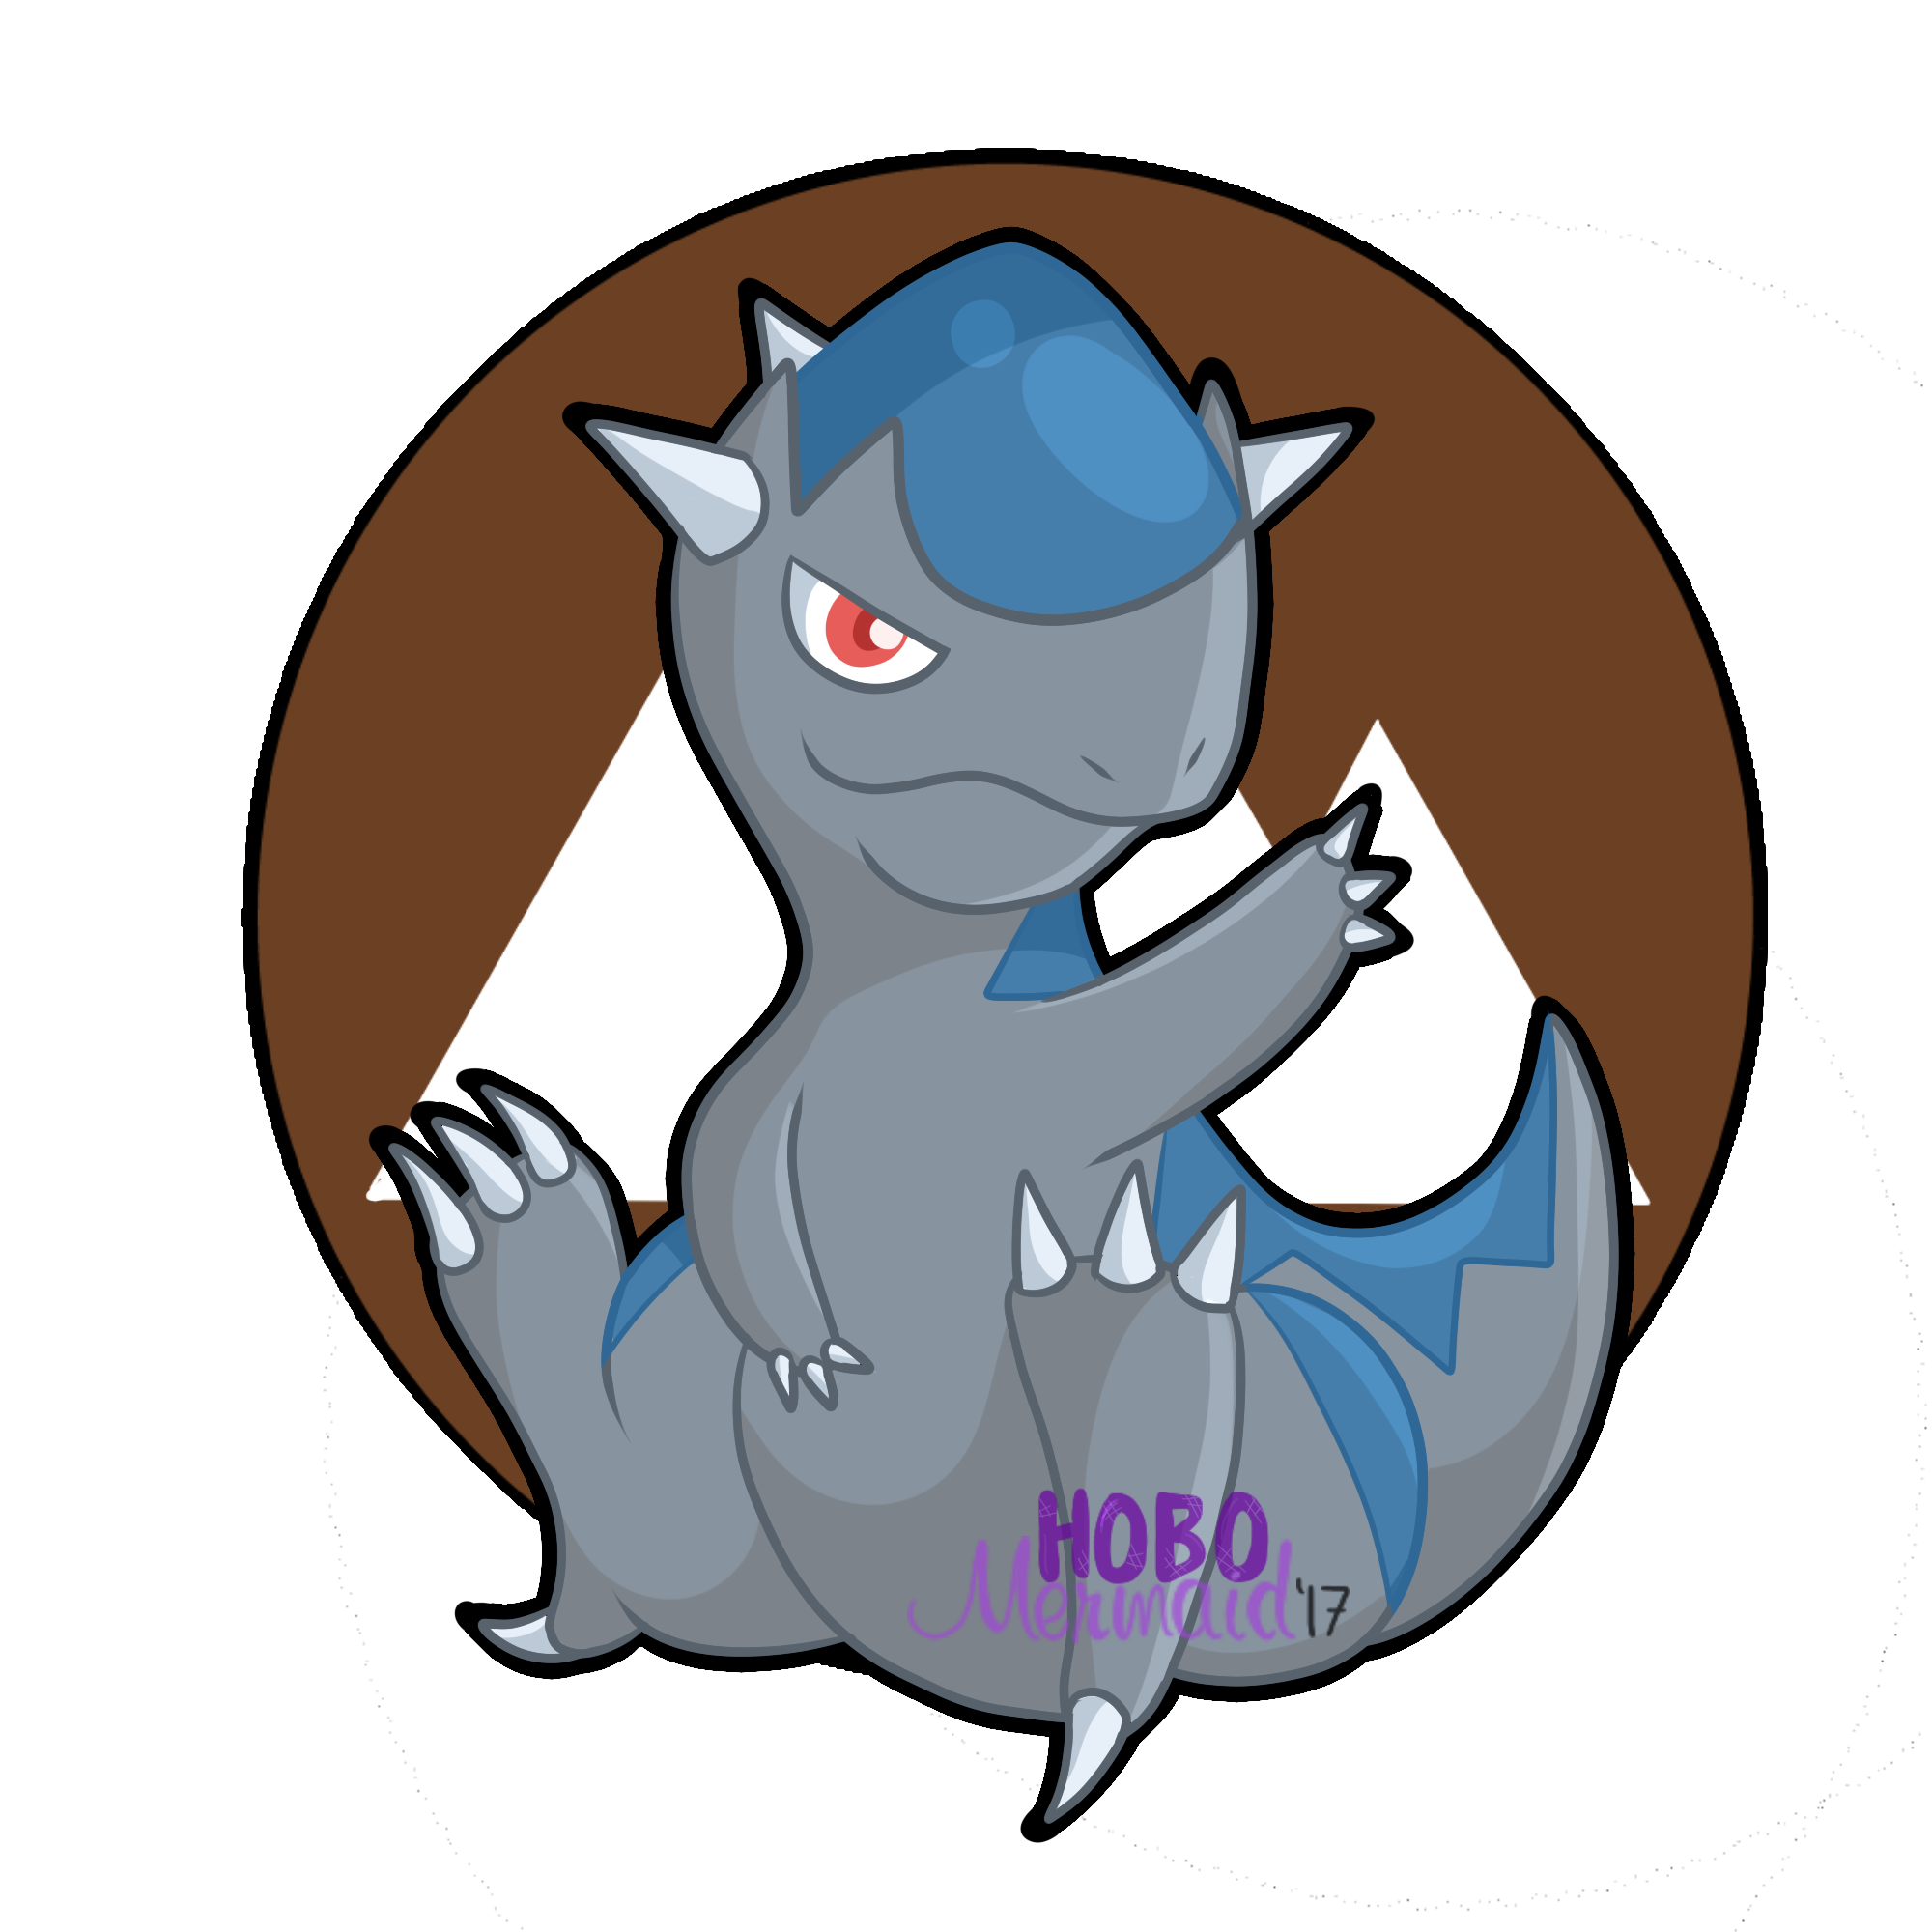 Hobo drawing stitch. Hobomermaid s profile page